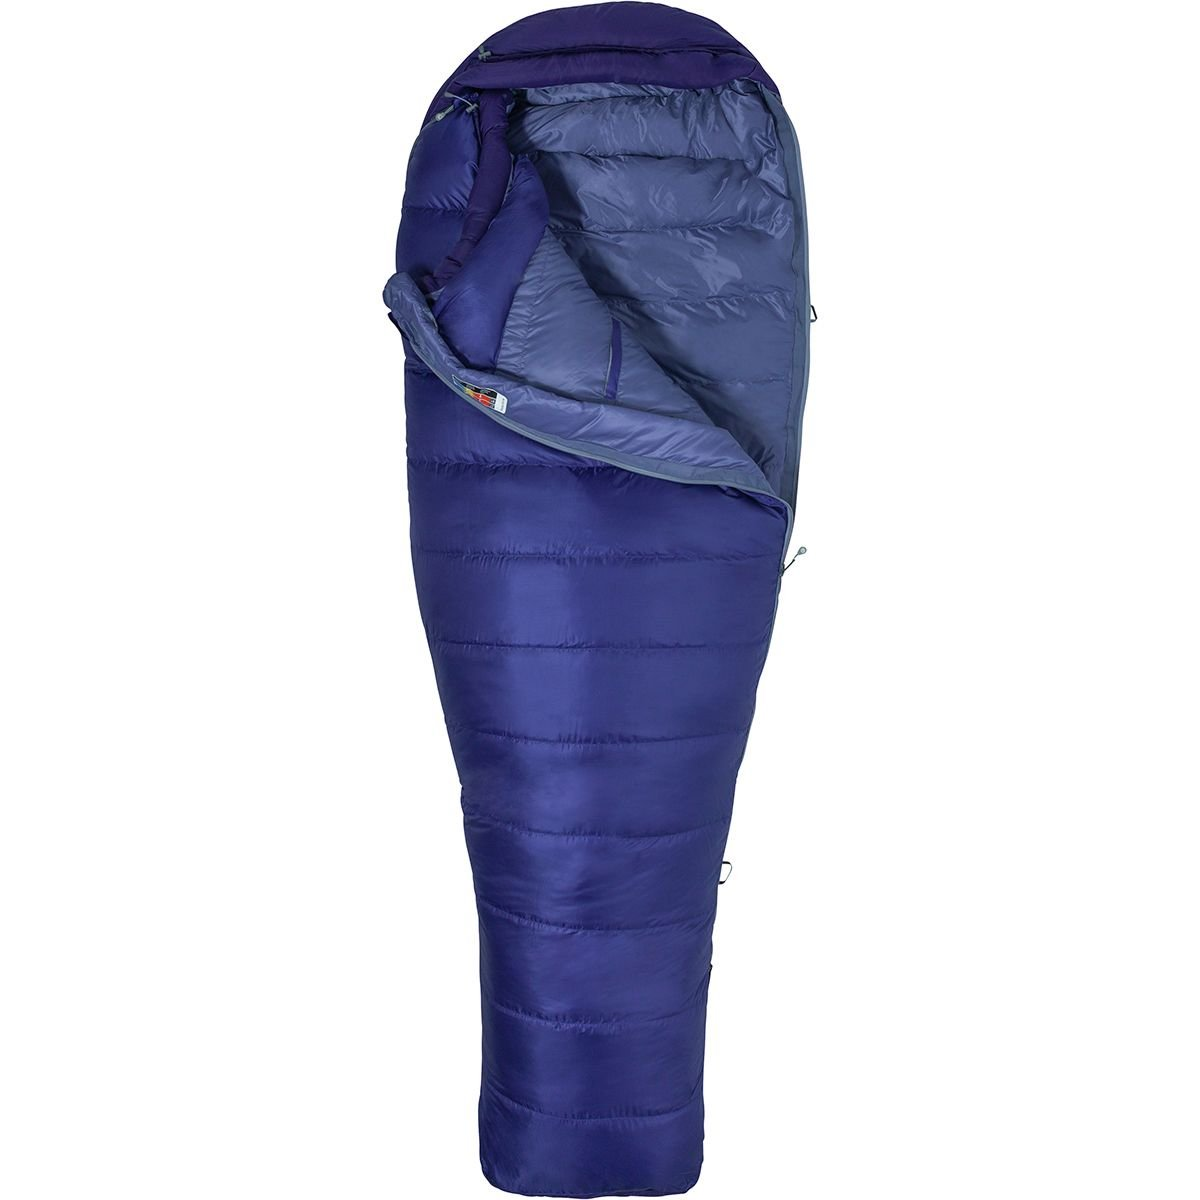 An image of Marmot Ouray Sleeping Bag | Expert Camper